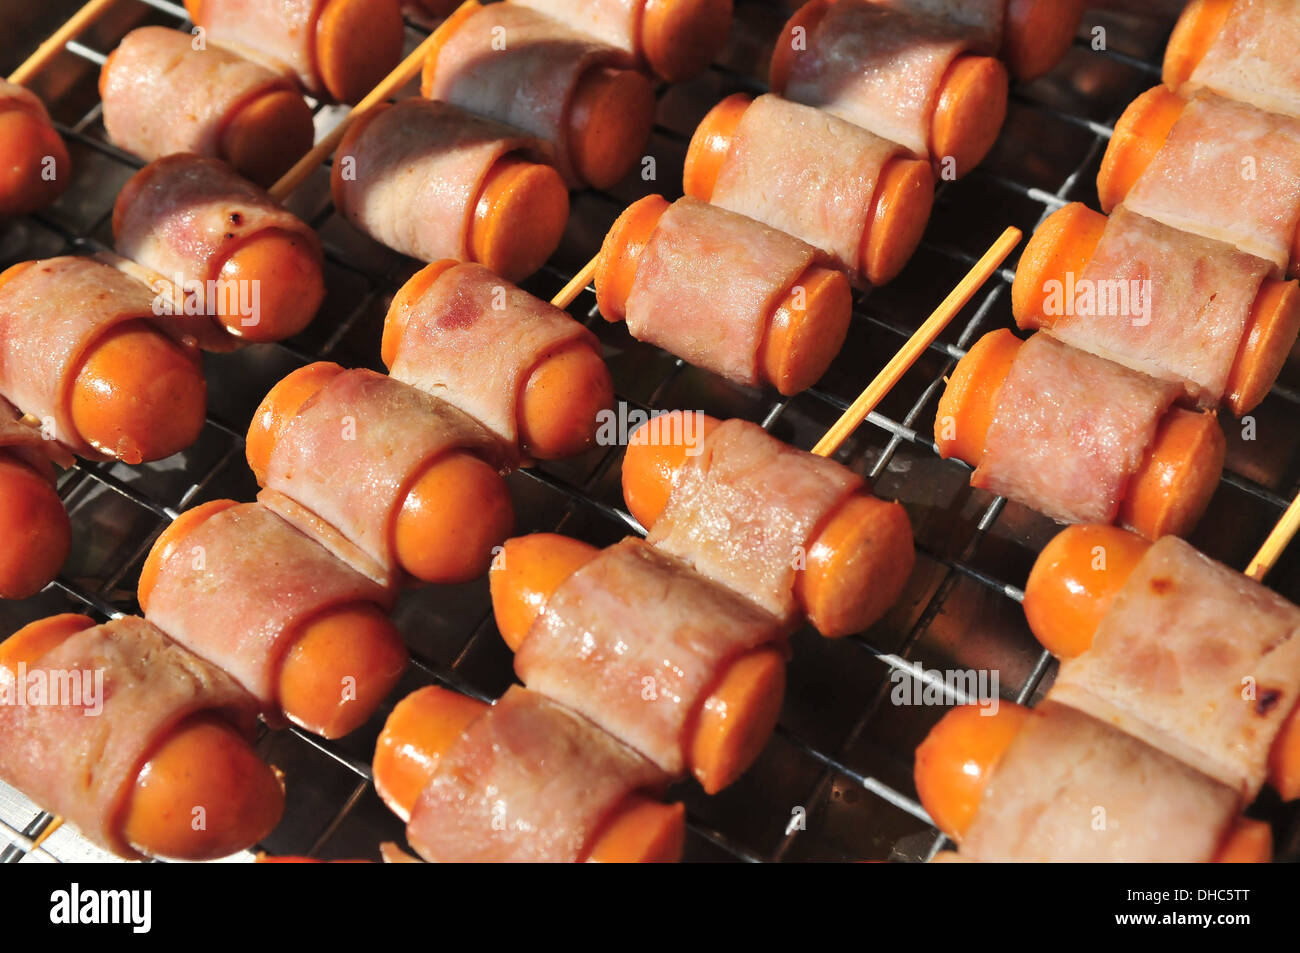 Speiselokal in Thailand - Thai Speckmantel Hotdogs Stockbild